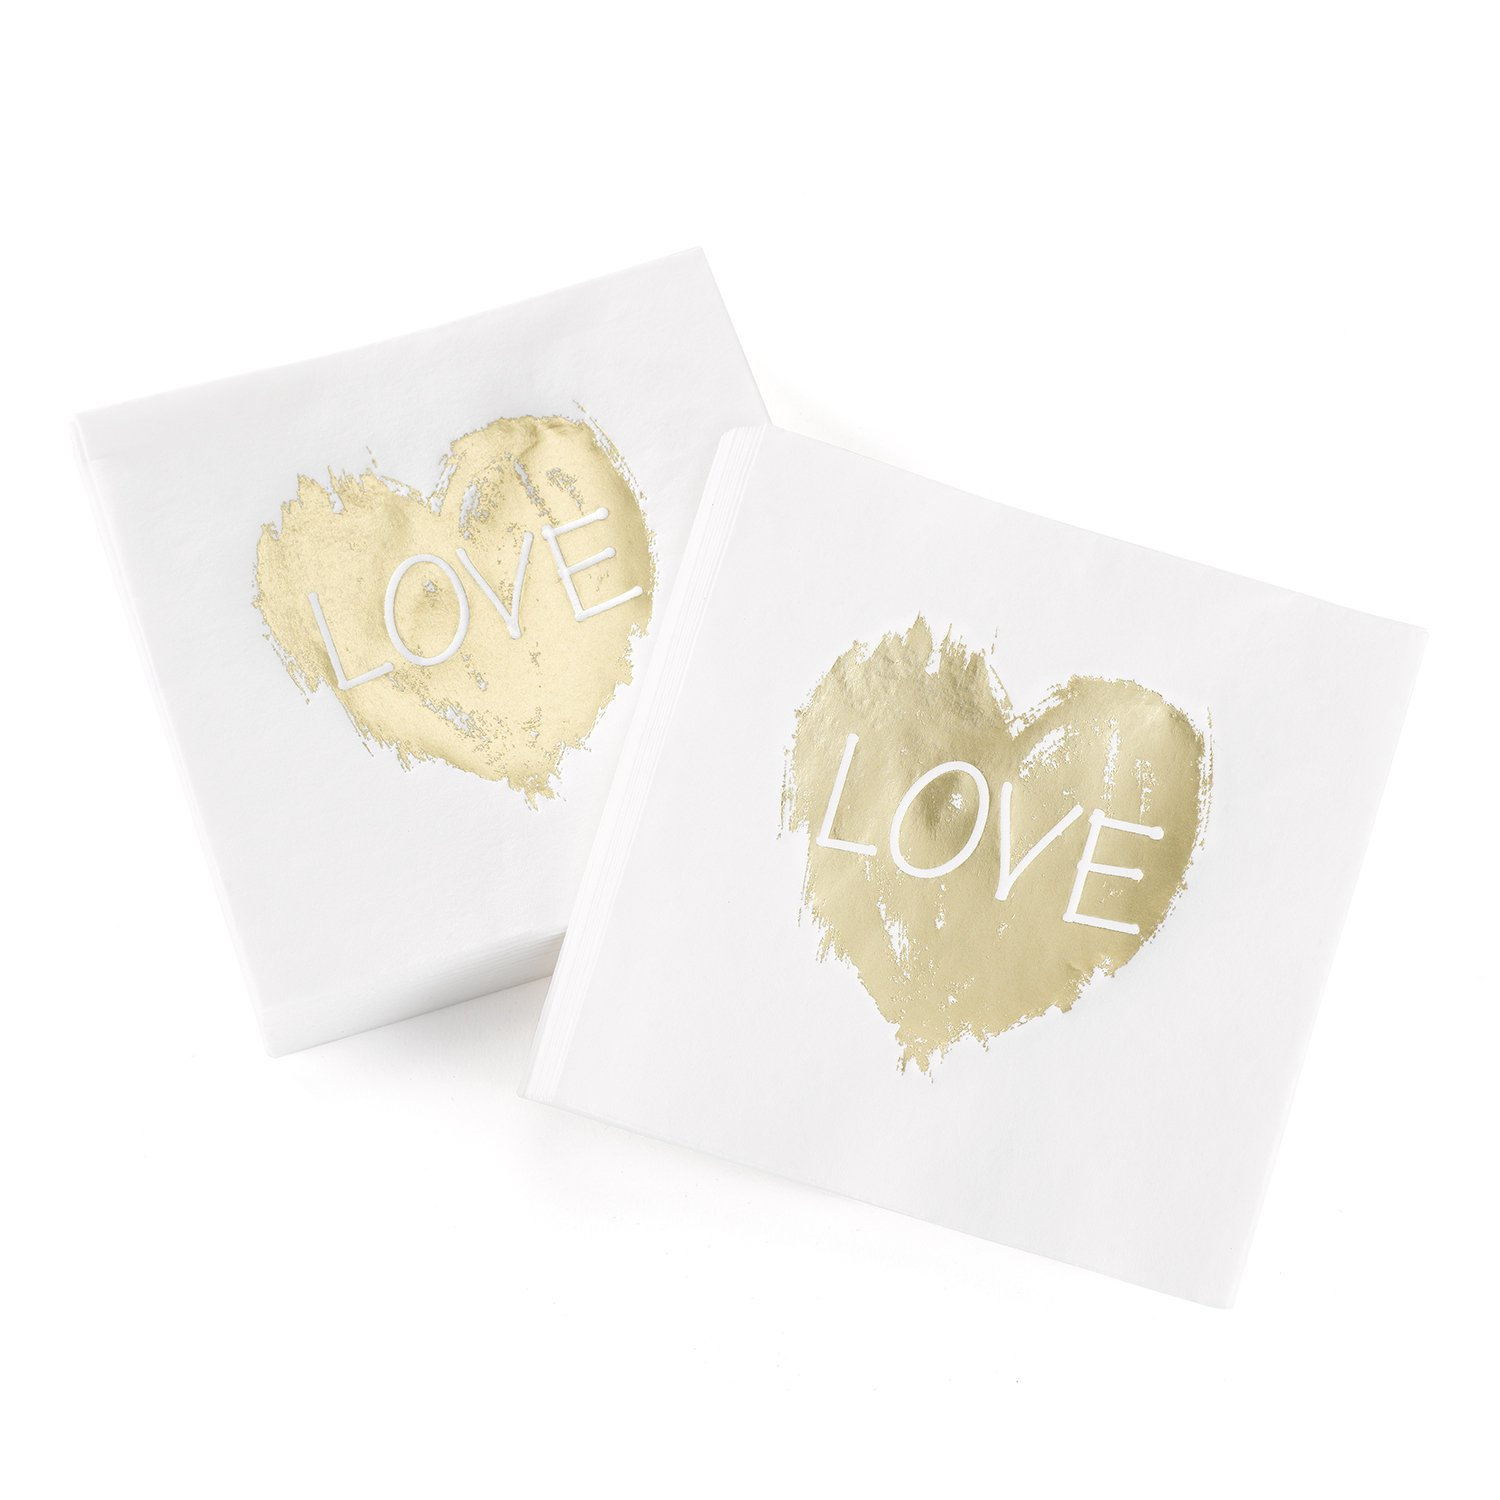 Hortense B. Hewitt 50 Count Brush of Love Napkins, Gold by Hortense B. Hewitt (Image #1)